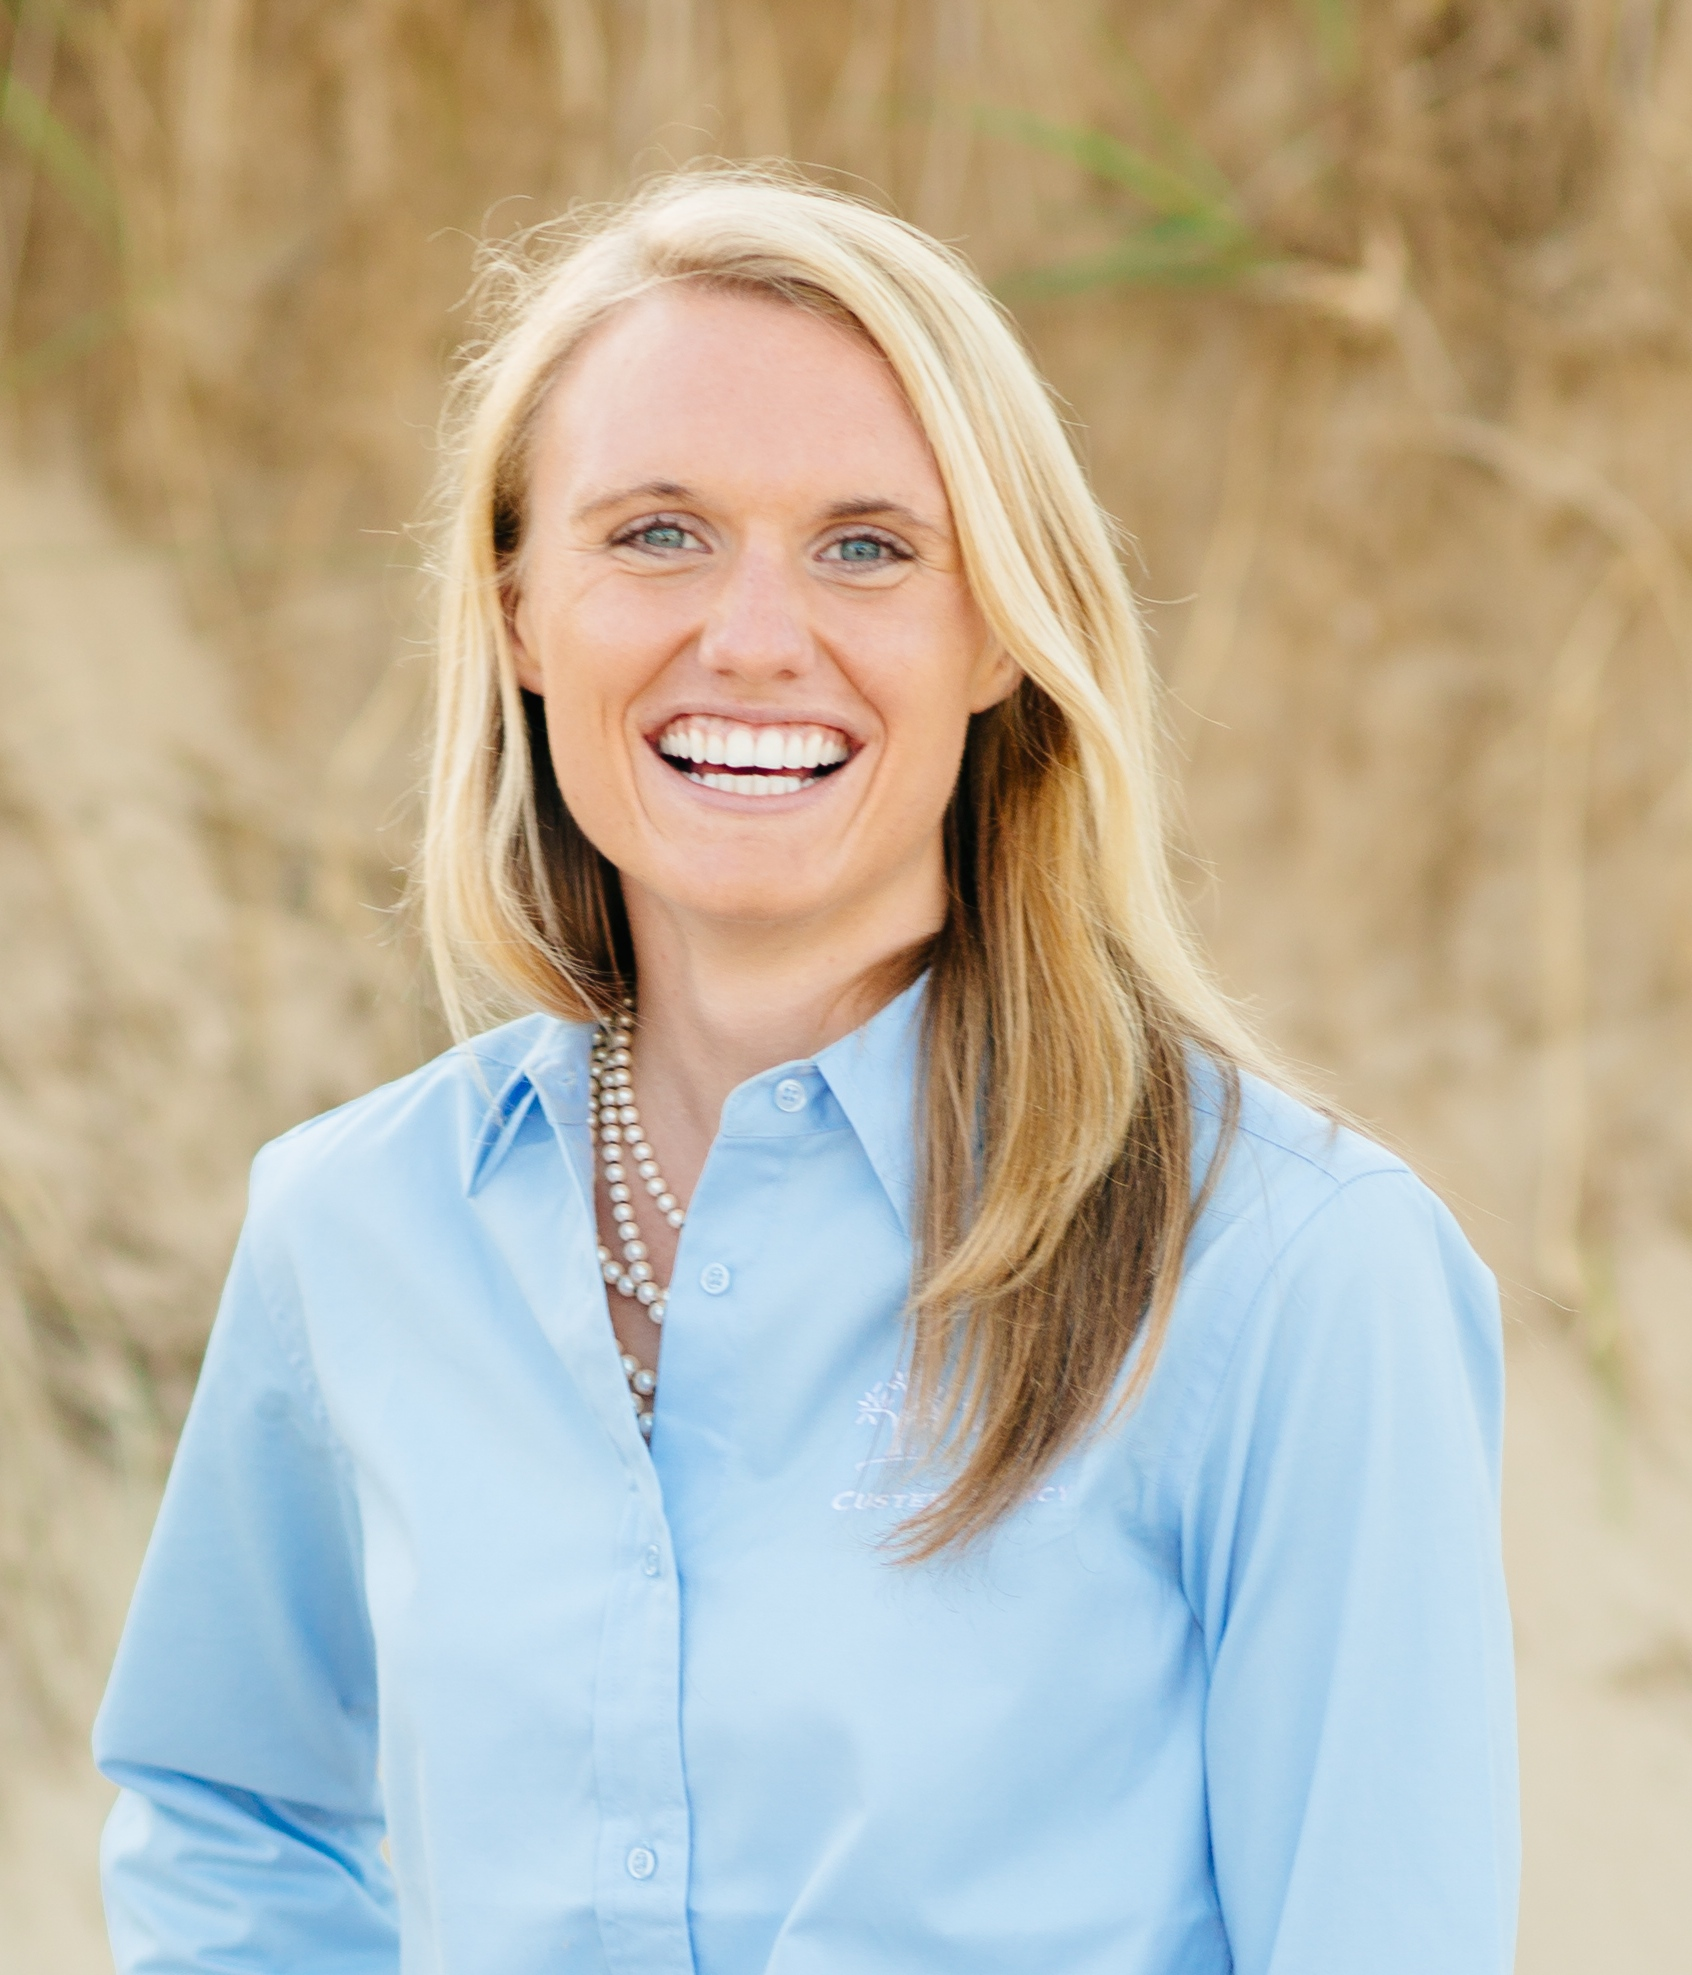 About the Author - Stephanie Vail is a member of the Custer Financial Advisors team. She specializes in helping millennials with financial literacy and planning. To learn more about Stephanie and Custer Financial Advisors, visit www.CusterFinancialAdvisors.Comor email Stephanie at SVail@lpl.com.